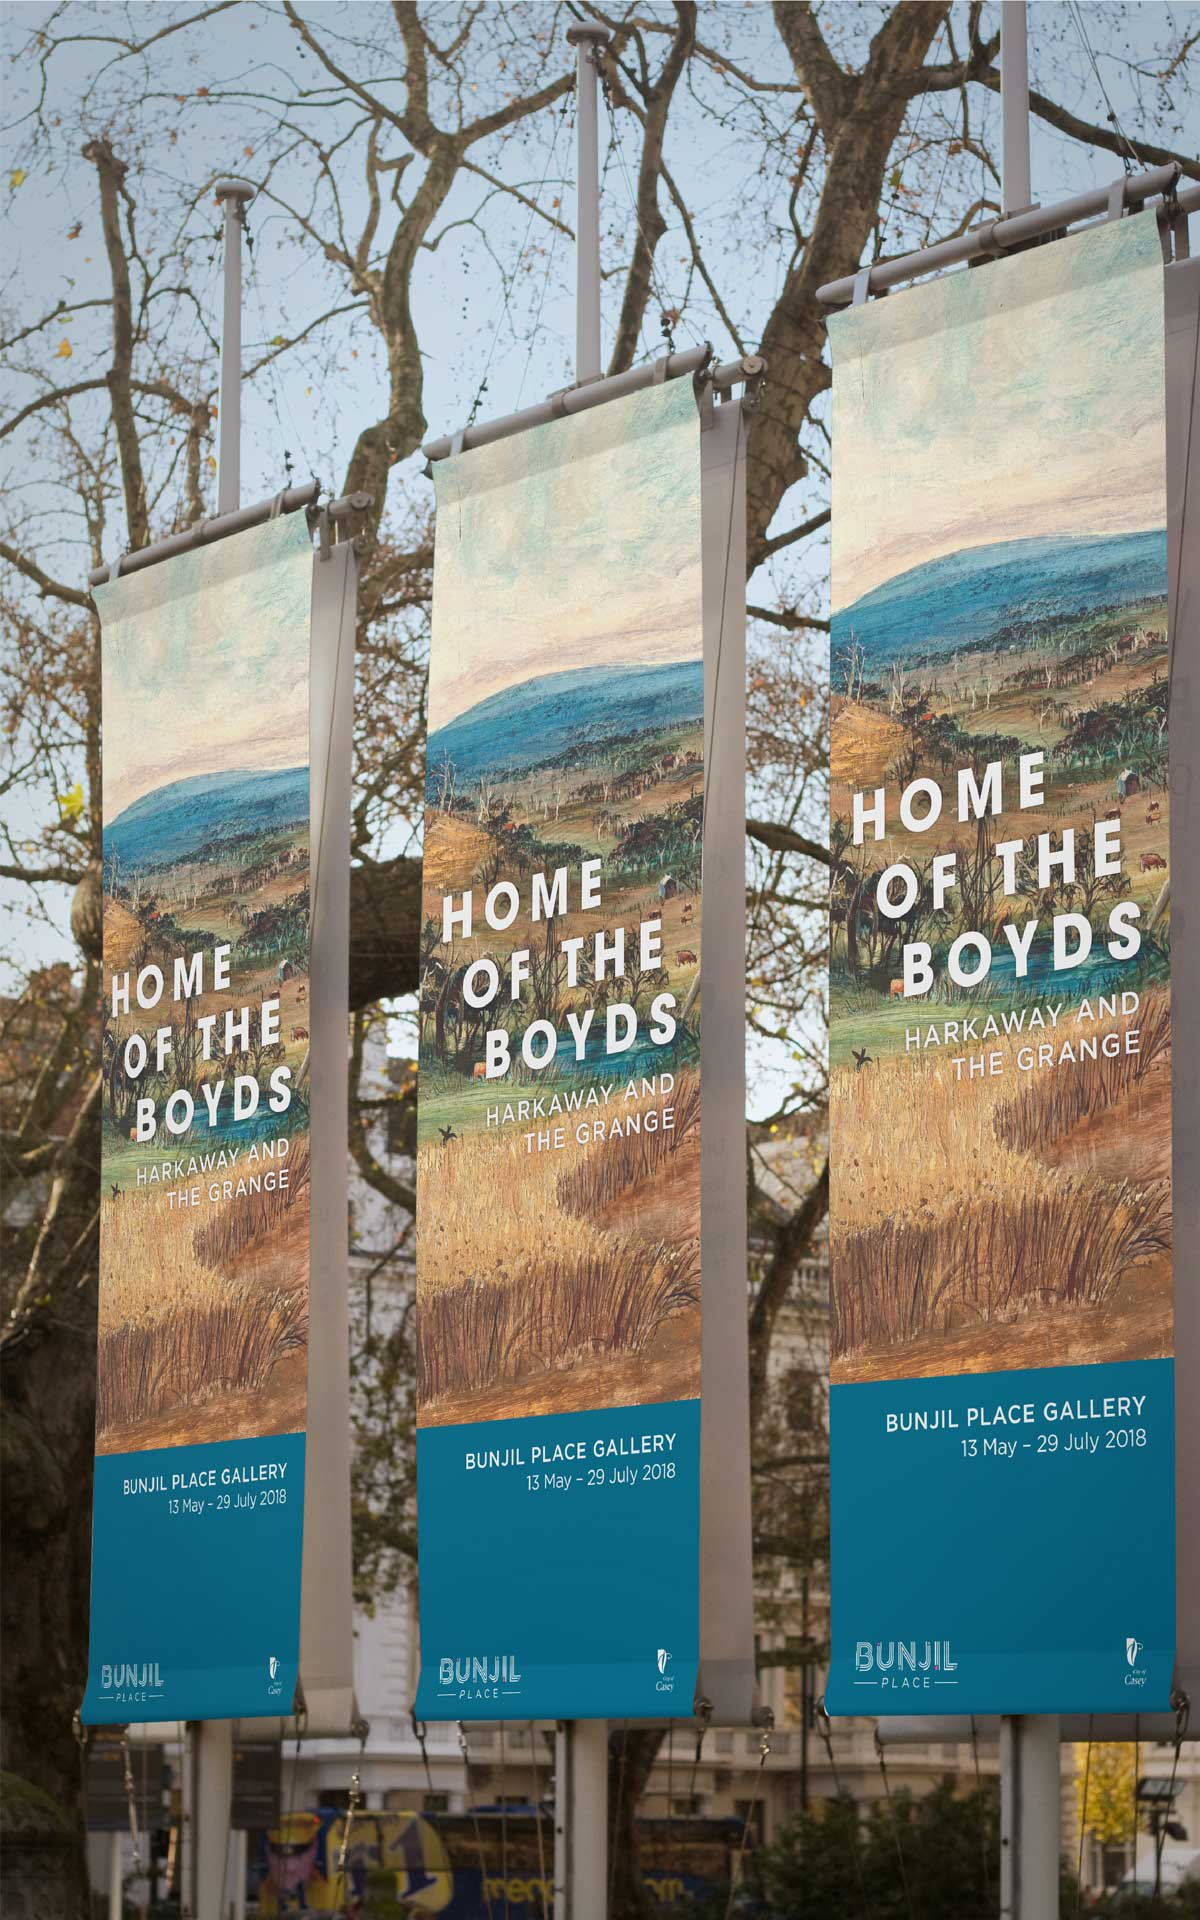 Home-of-the-Boyds-Banner-Design